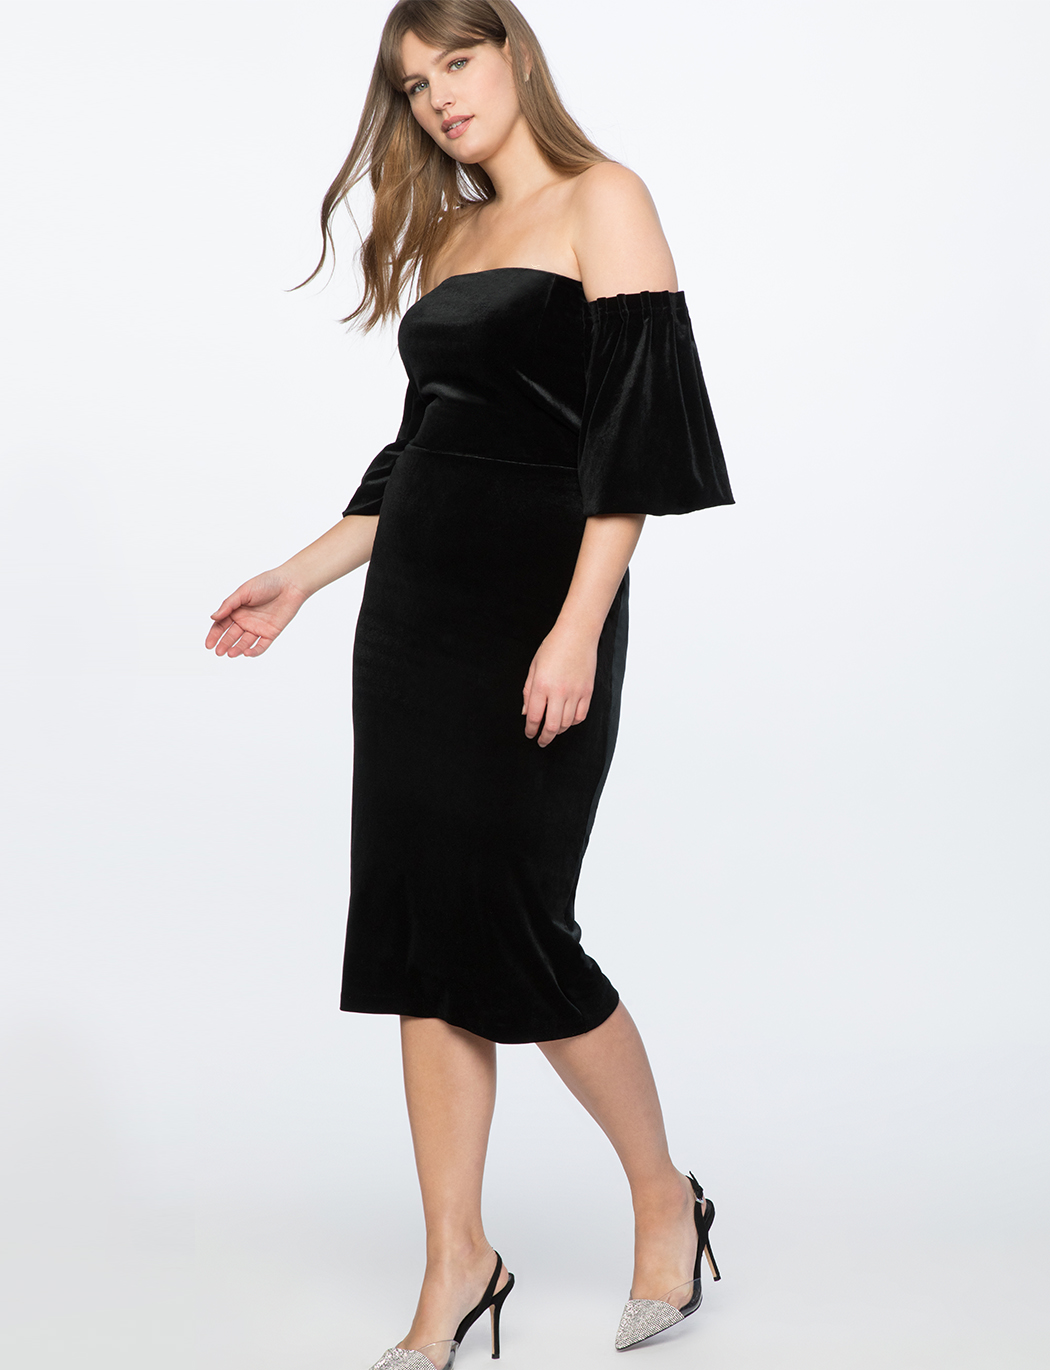 Strapless Velvet Dress with Full Sleeves 6